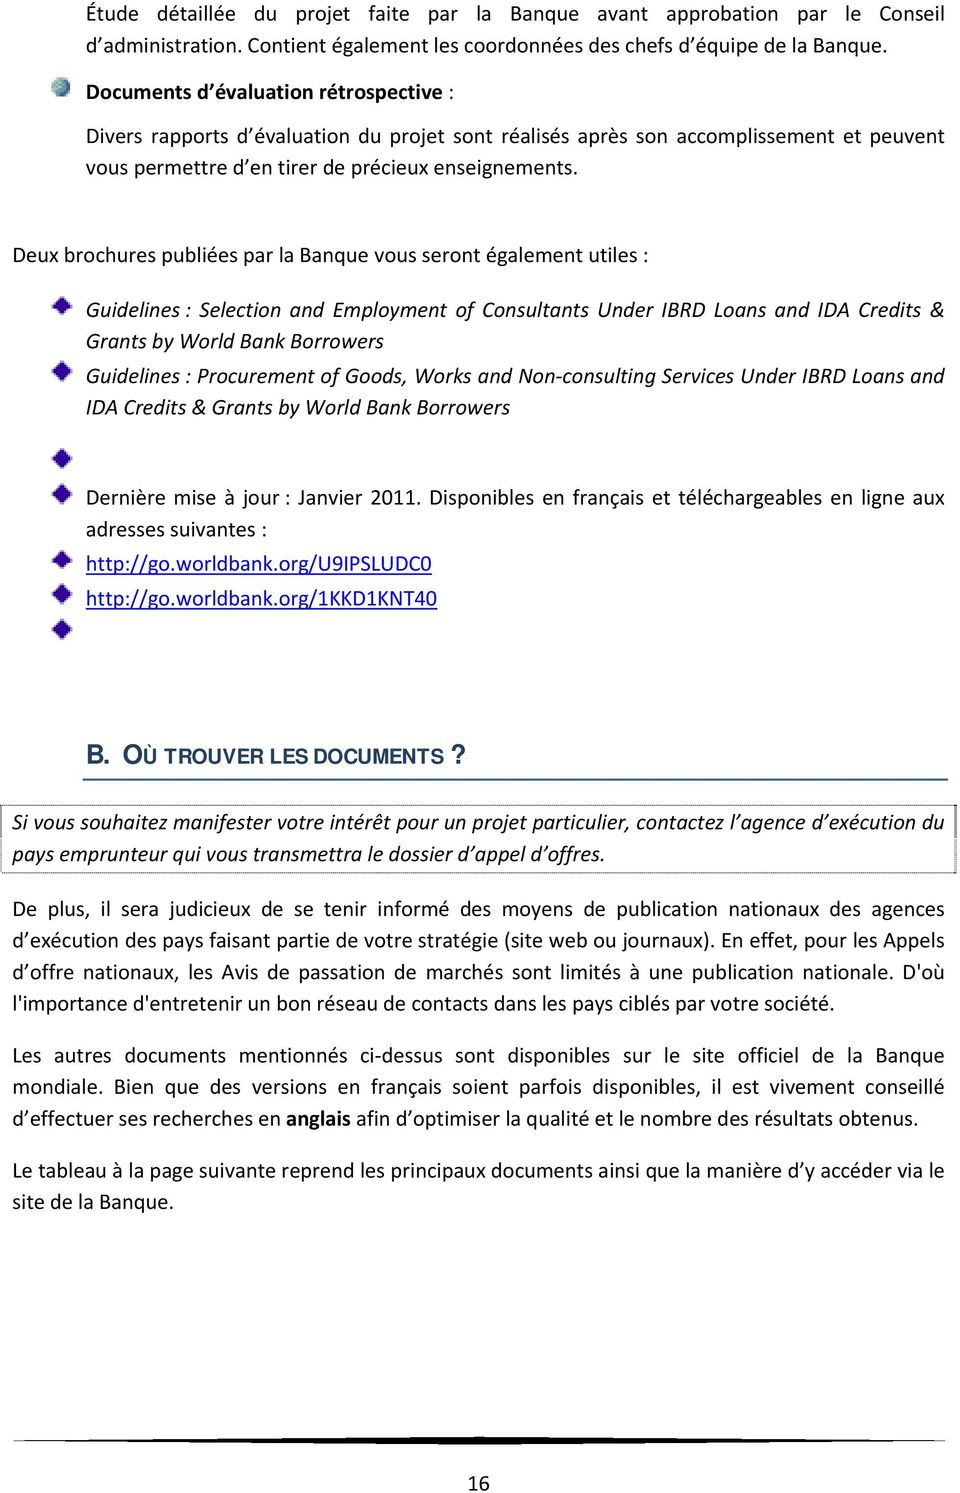 Deux brochures publiées par la Banque vous seront également utiles : Guidelines : Selection and Employment of Consultants Under IBRD Loans and IDA Credits & Grants by World Bank Borrowers Guidelines